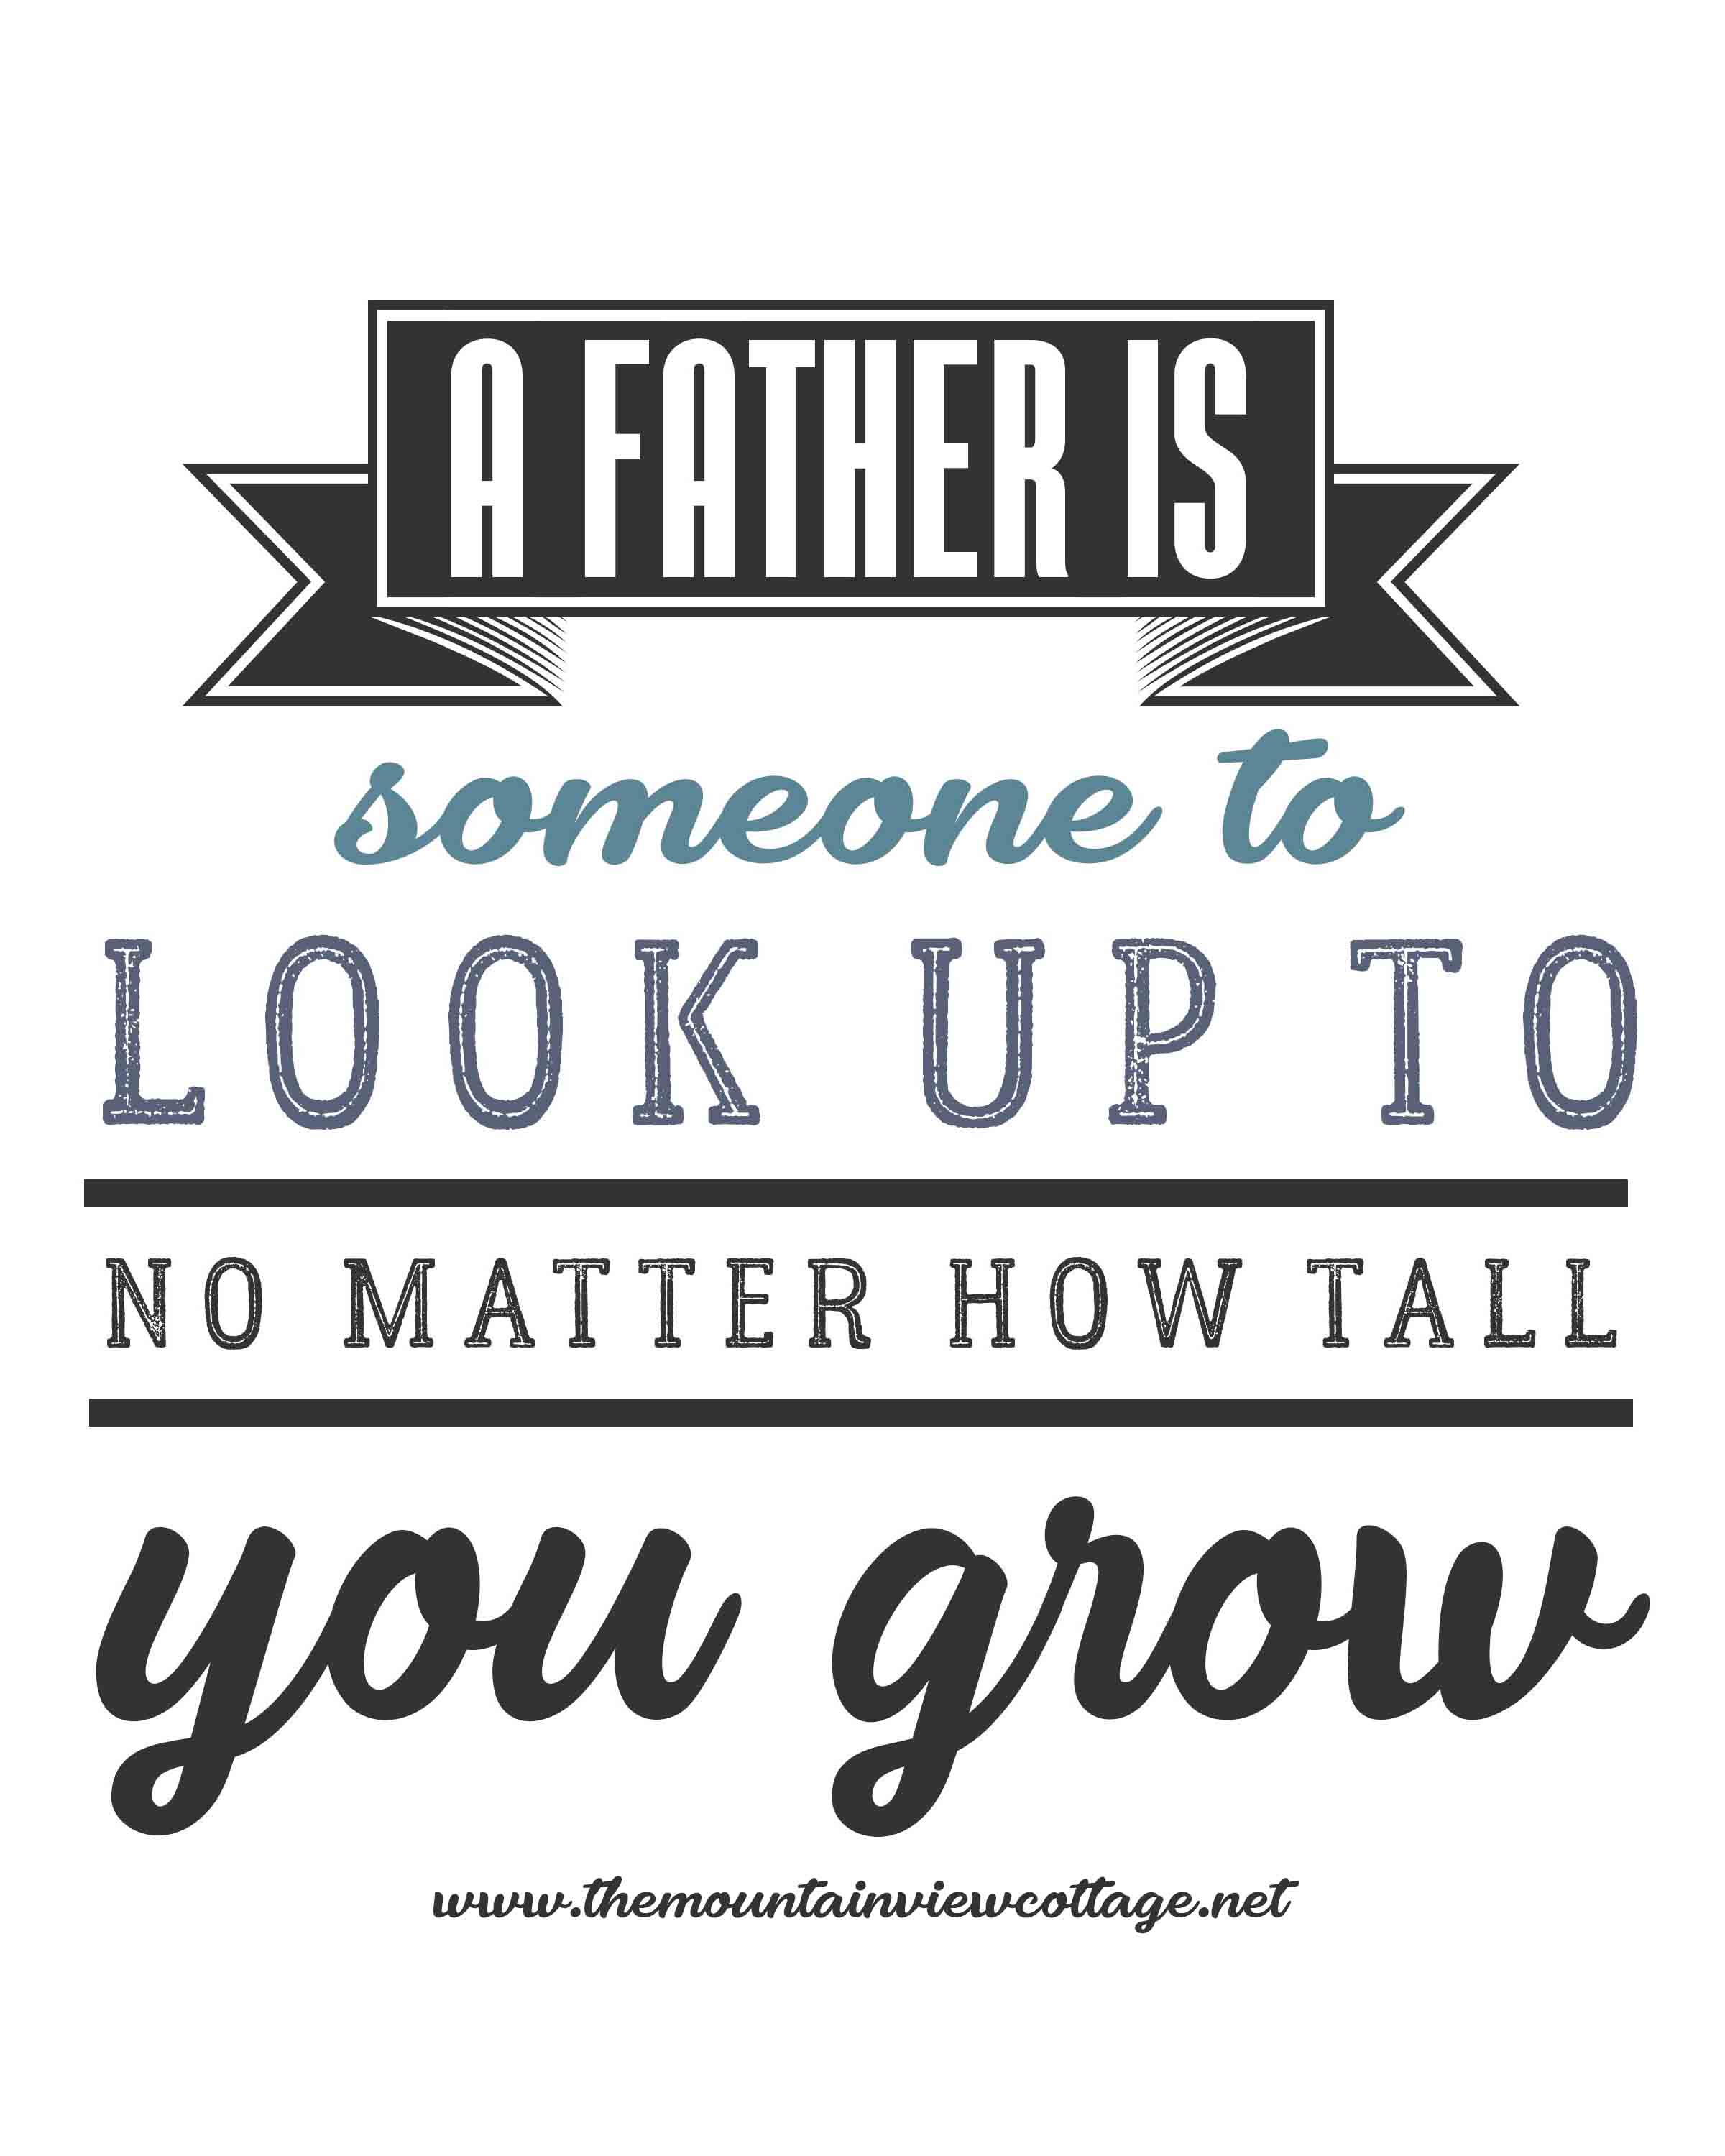 Dad quotes-Dad quotes from son- A Father is someone to look up to no matter how tall you grow